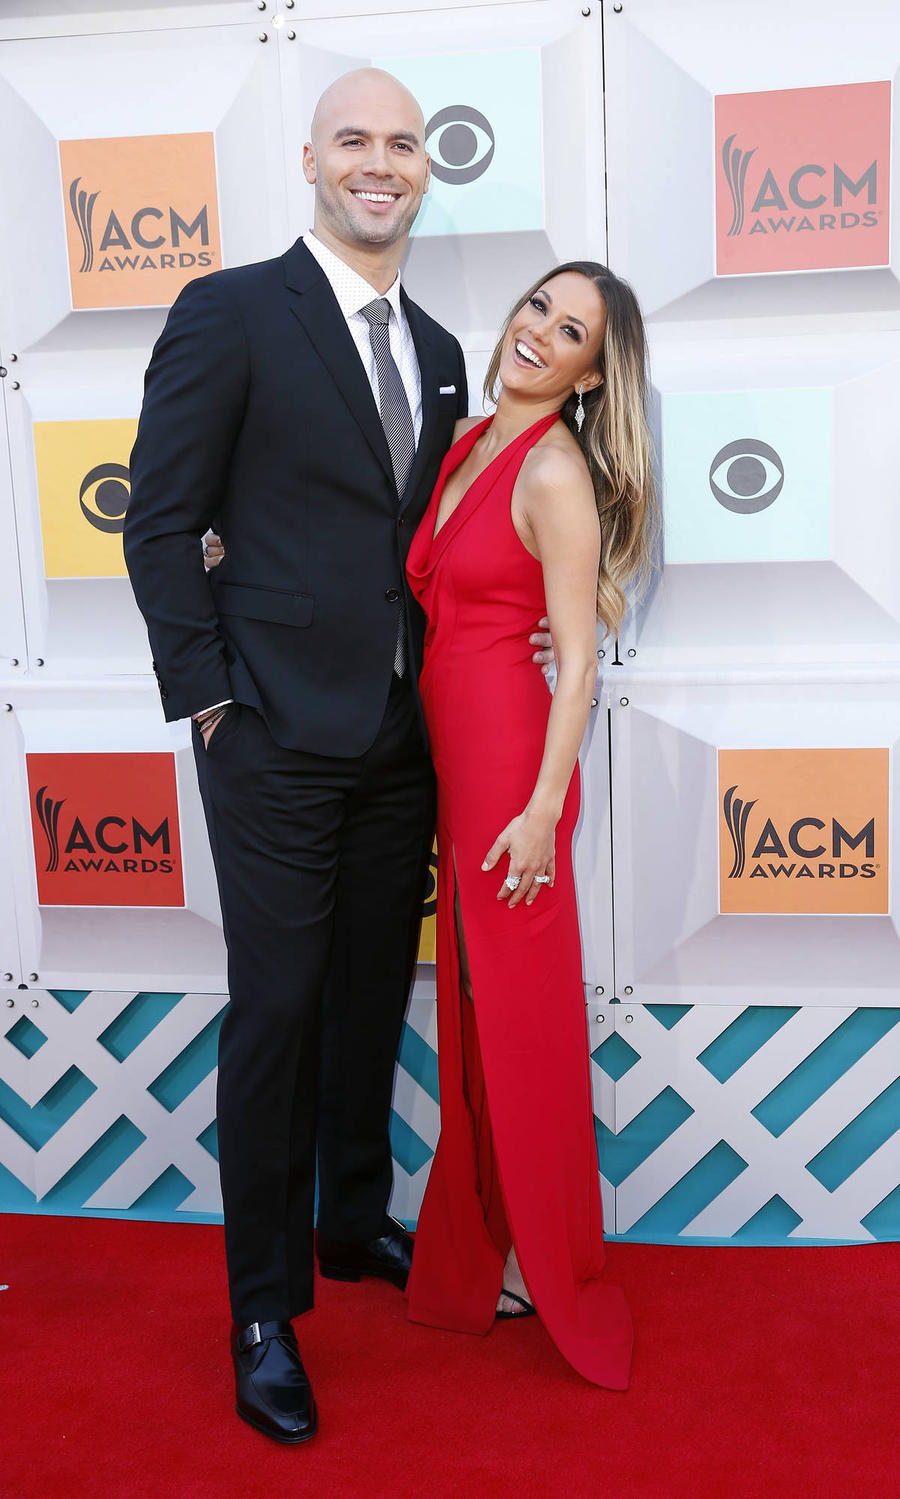 Jana Kramer's Estranged Husband Is 'Deeply Sorry' For Hurting Her